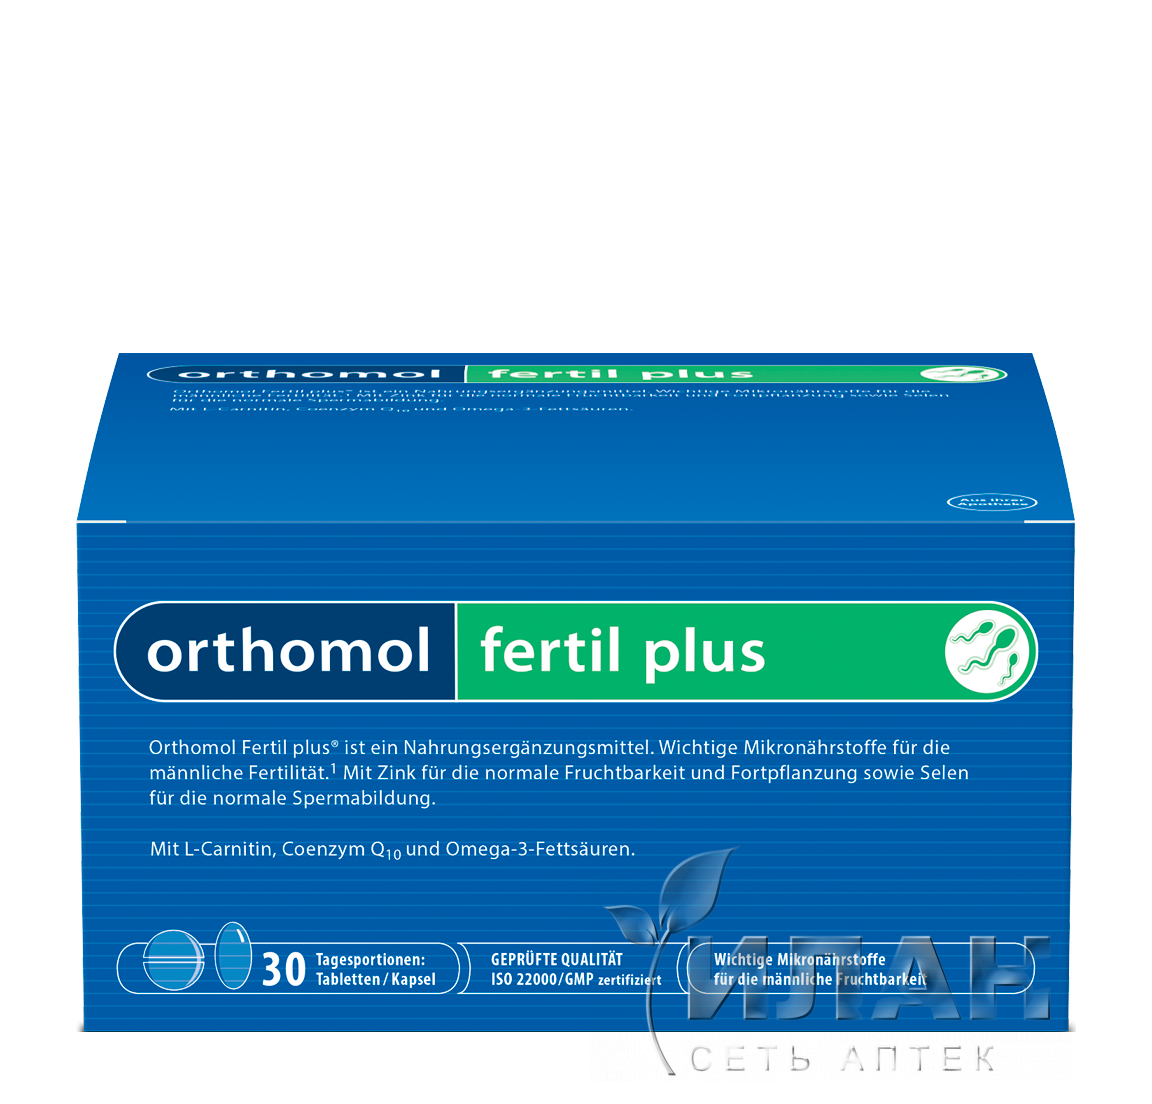 Ортомоль Фертиль плюс (Orthomol Fertil plus)